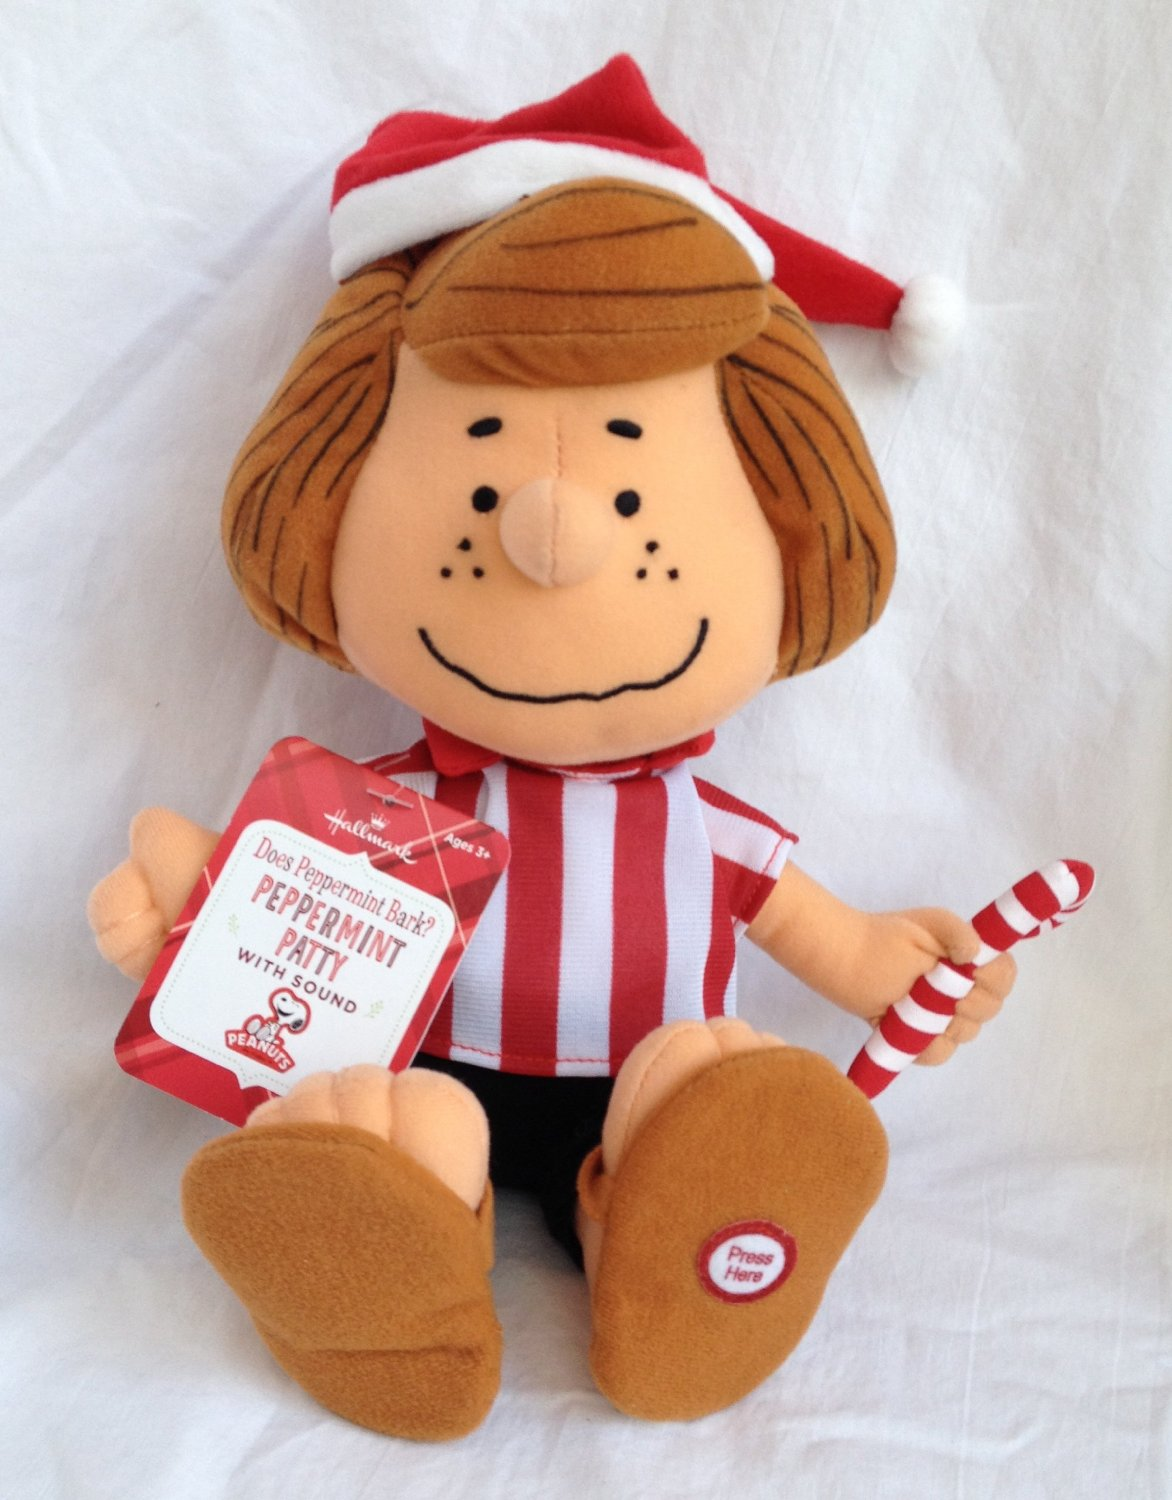 peanuts peppermint patty with sound 9 plush christmas doll